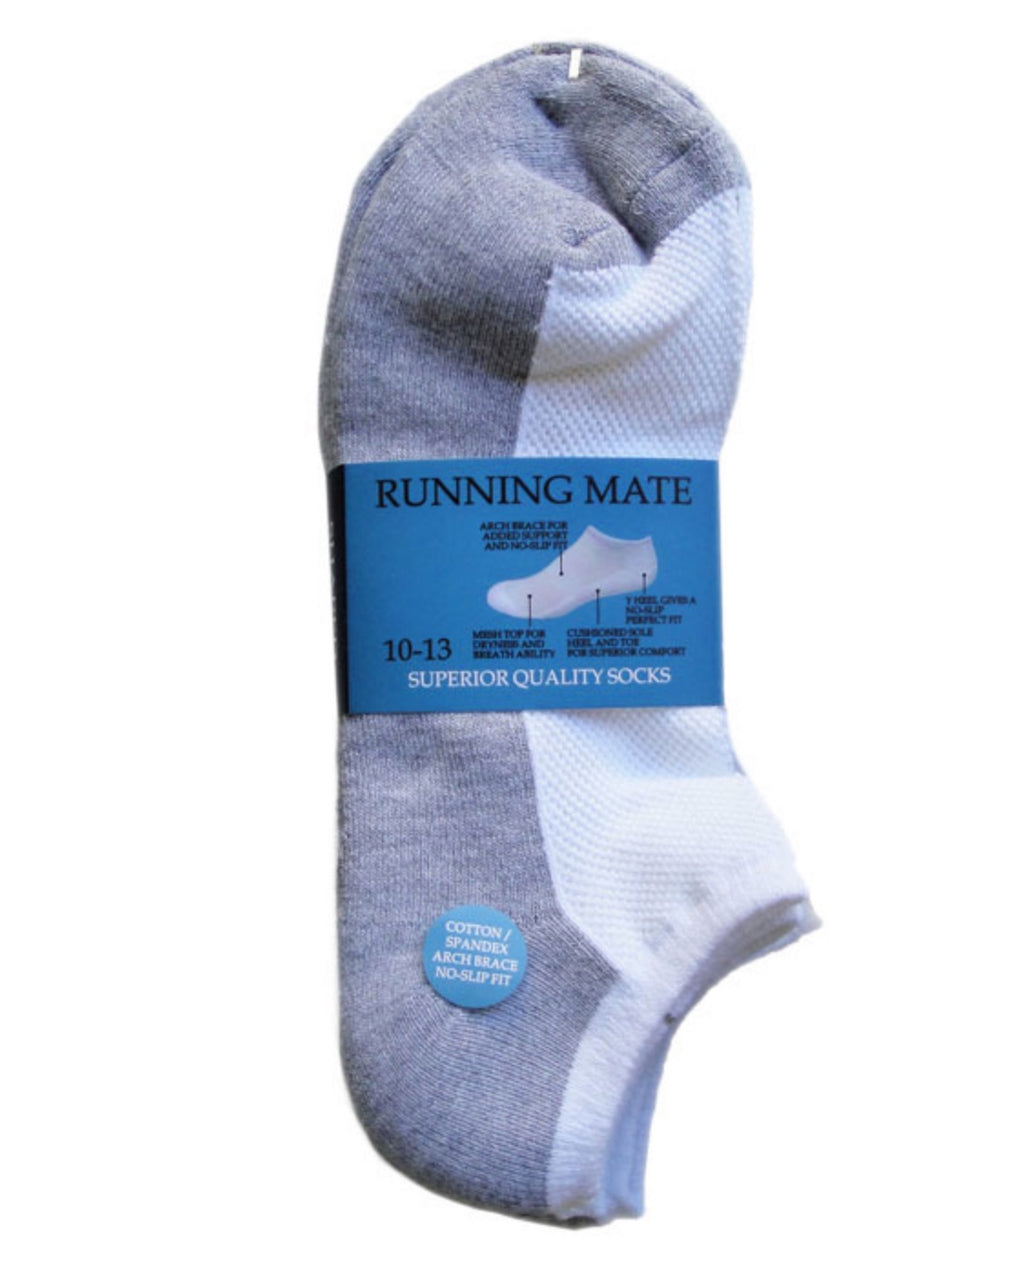 Running Mate Men's Athletic Low-Cut Socks - Sock Size 10-13 - Multi Pair Packages - (White/Grey, 3 Pair)